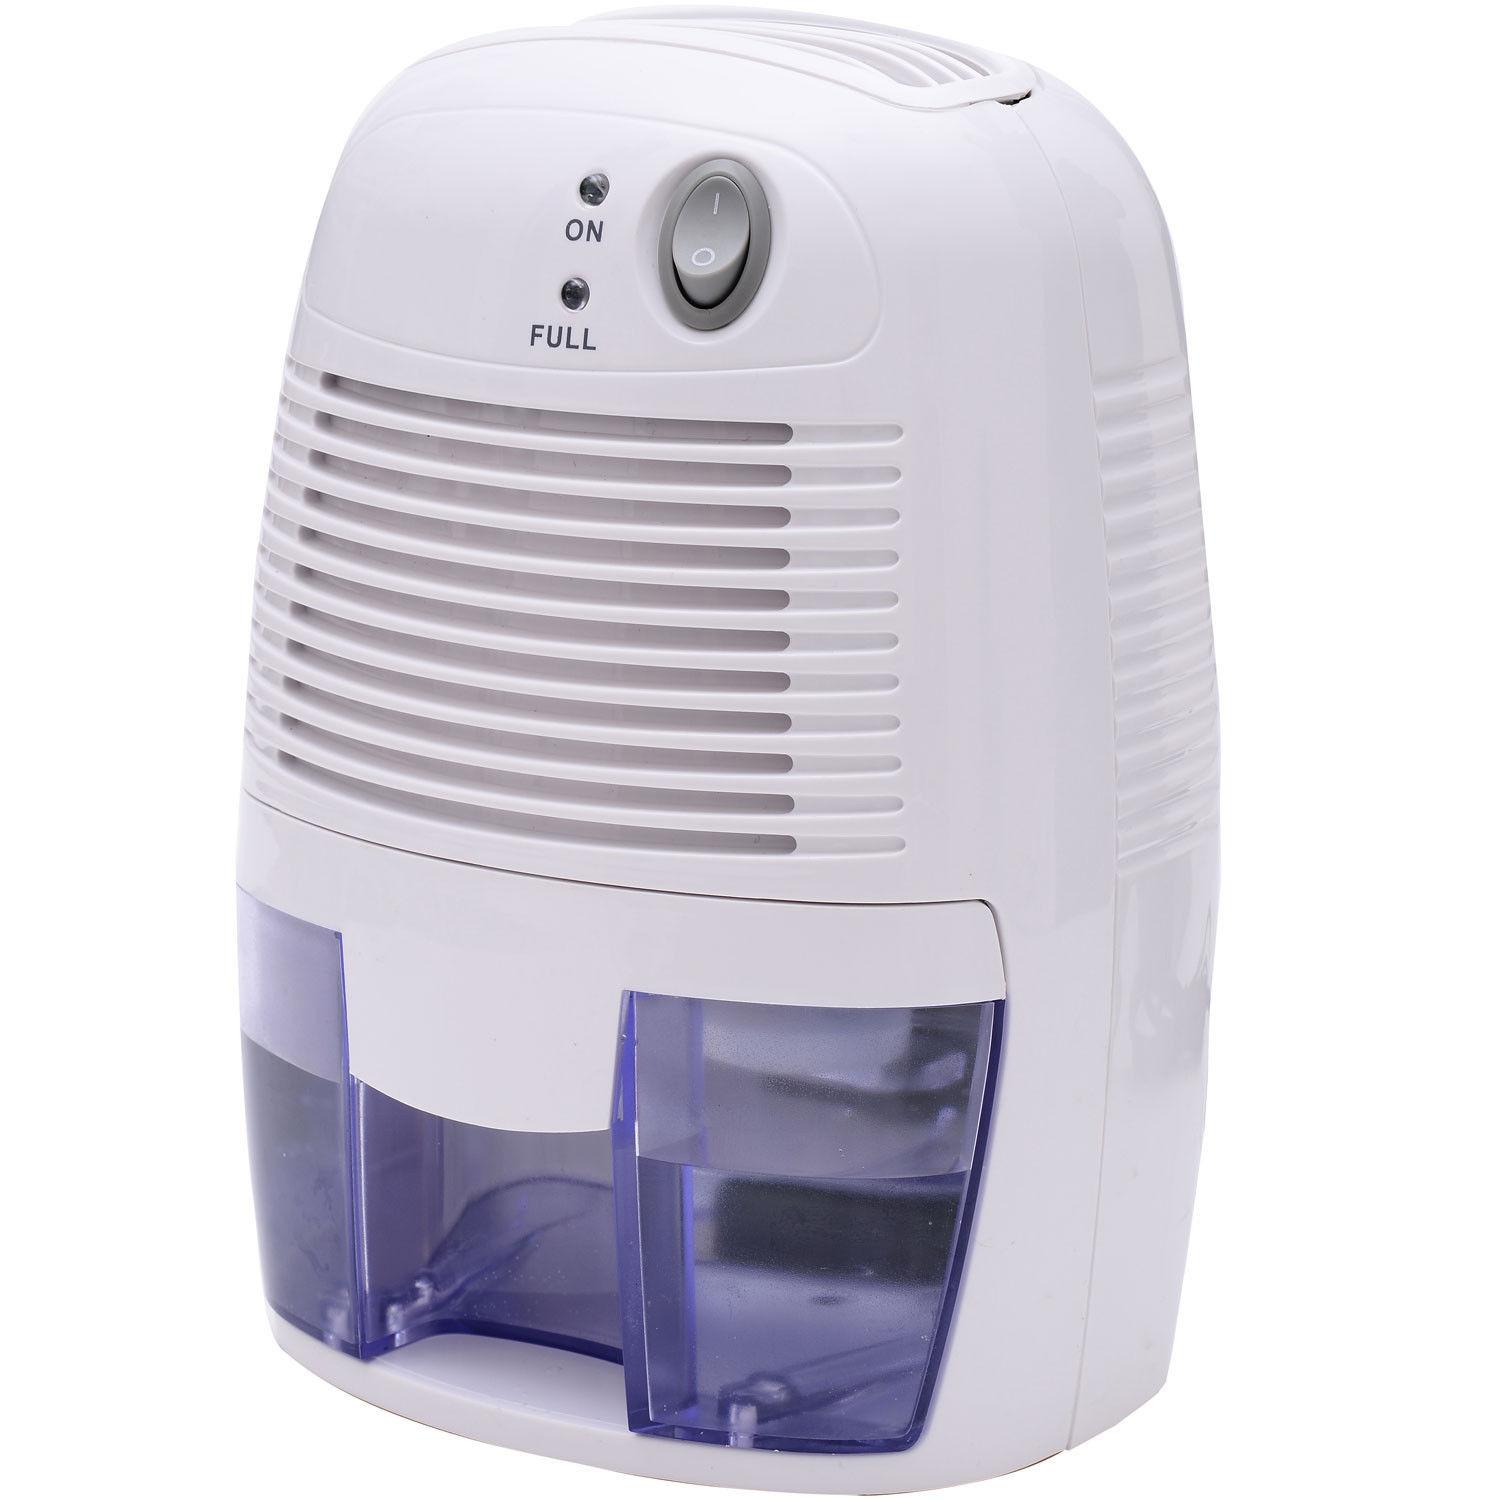 dehumidifier quilt electric air moisture appliance this dehumidifier  #3F3A91